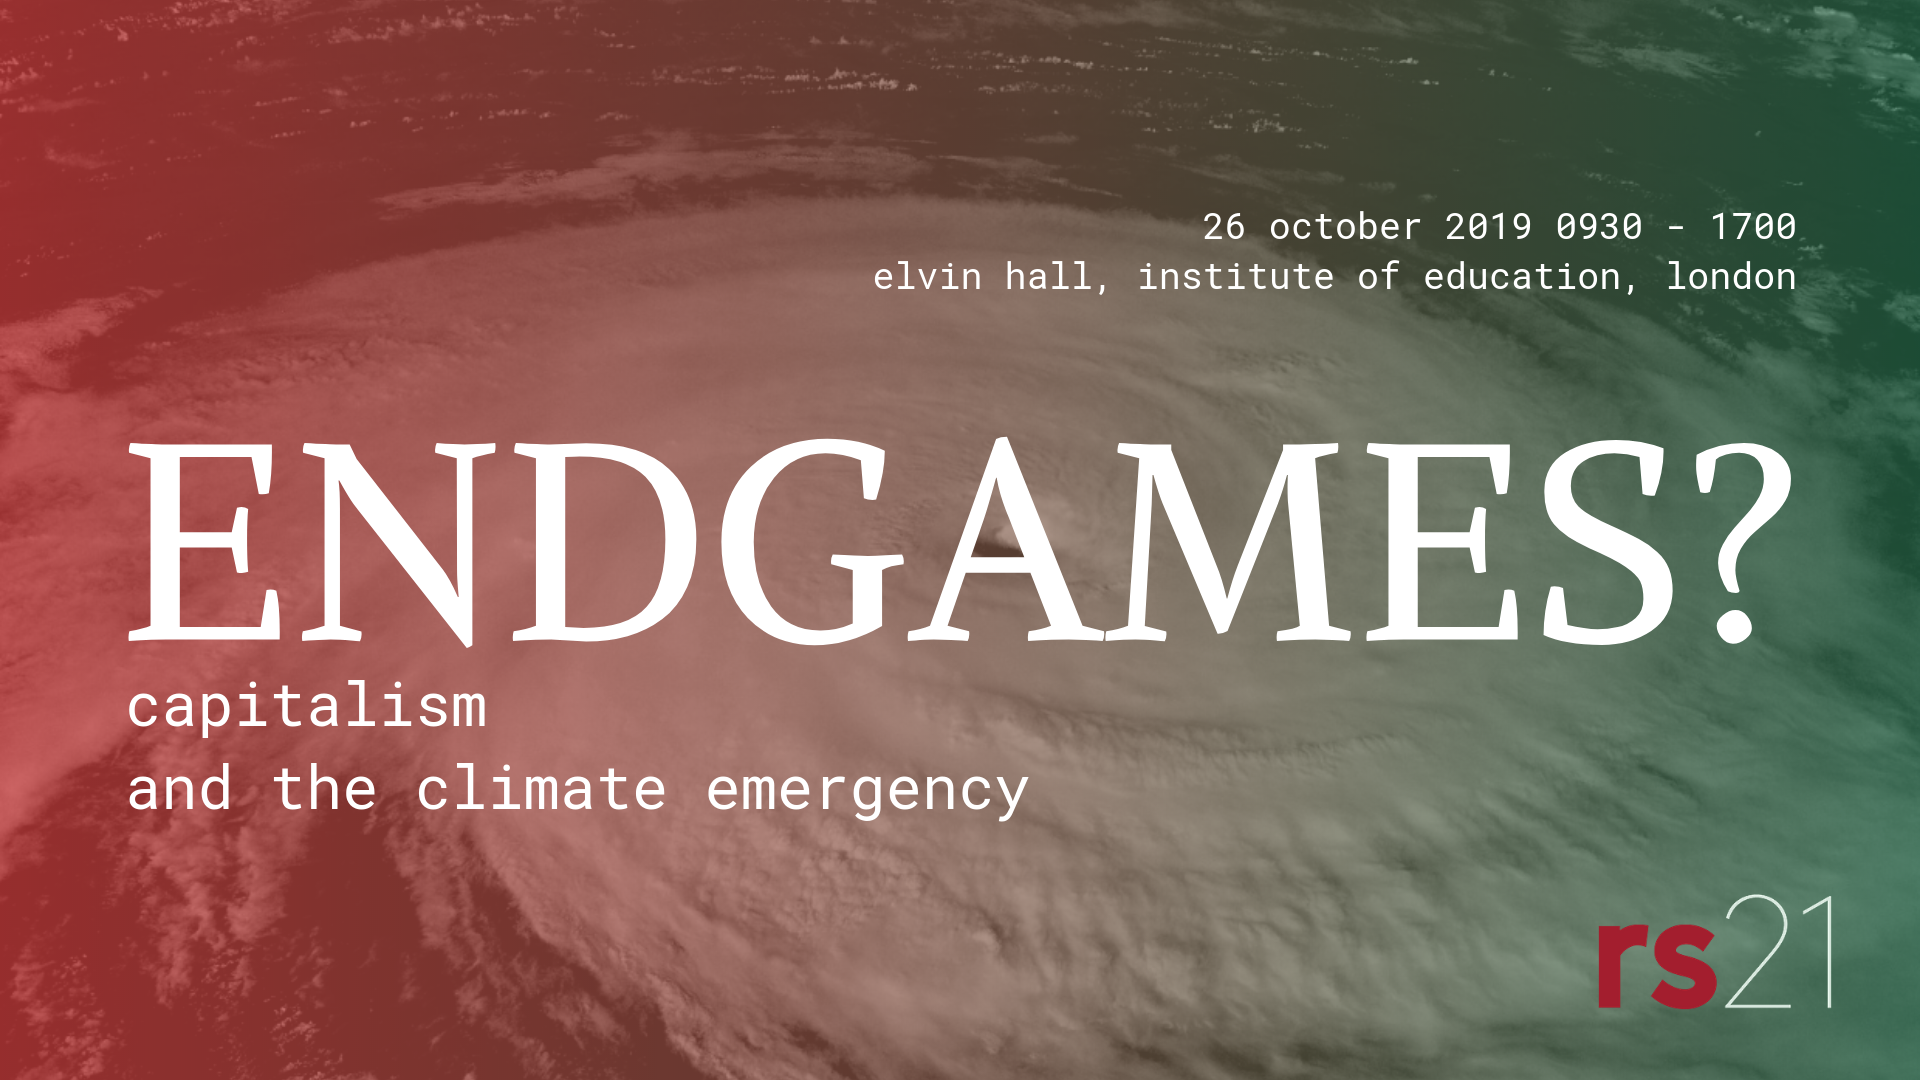 Endgames? Capitalism and the climate emergency. 26 October 2019, 0930-1700. Elvin Hall, Institute of Education, London. rs21